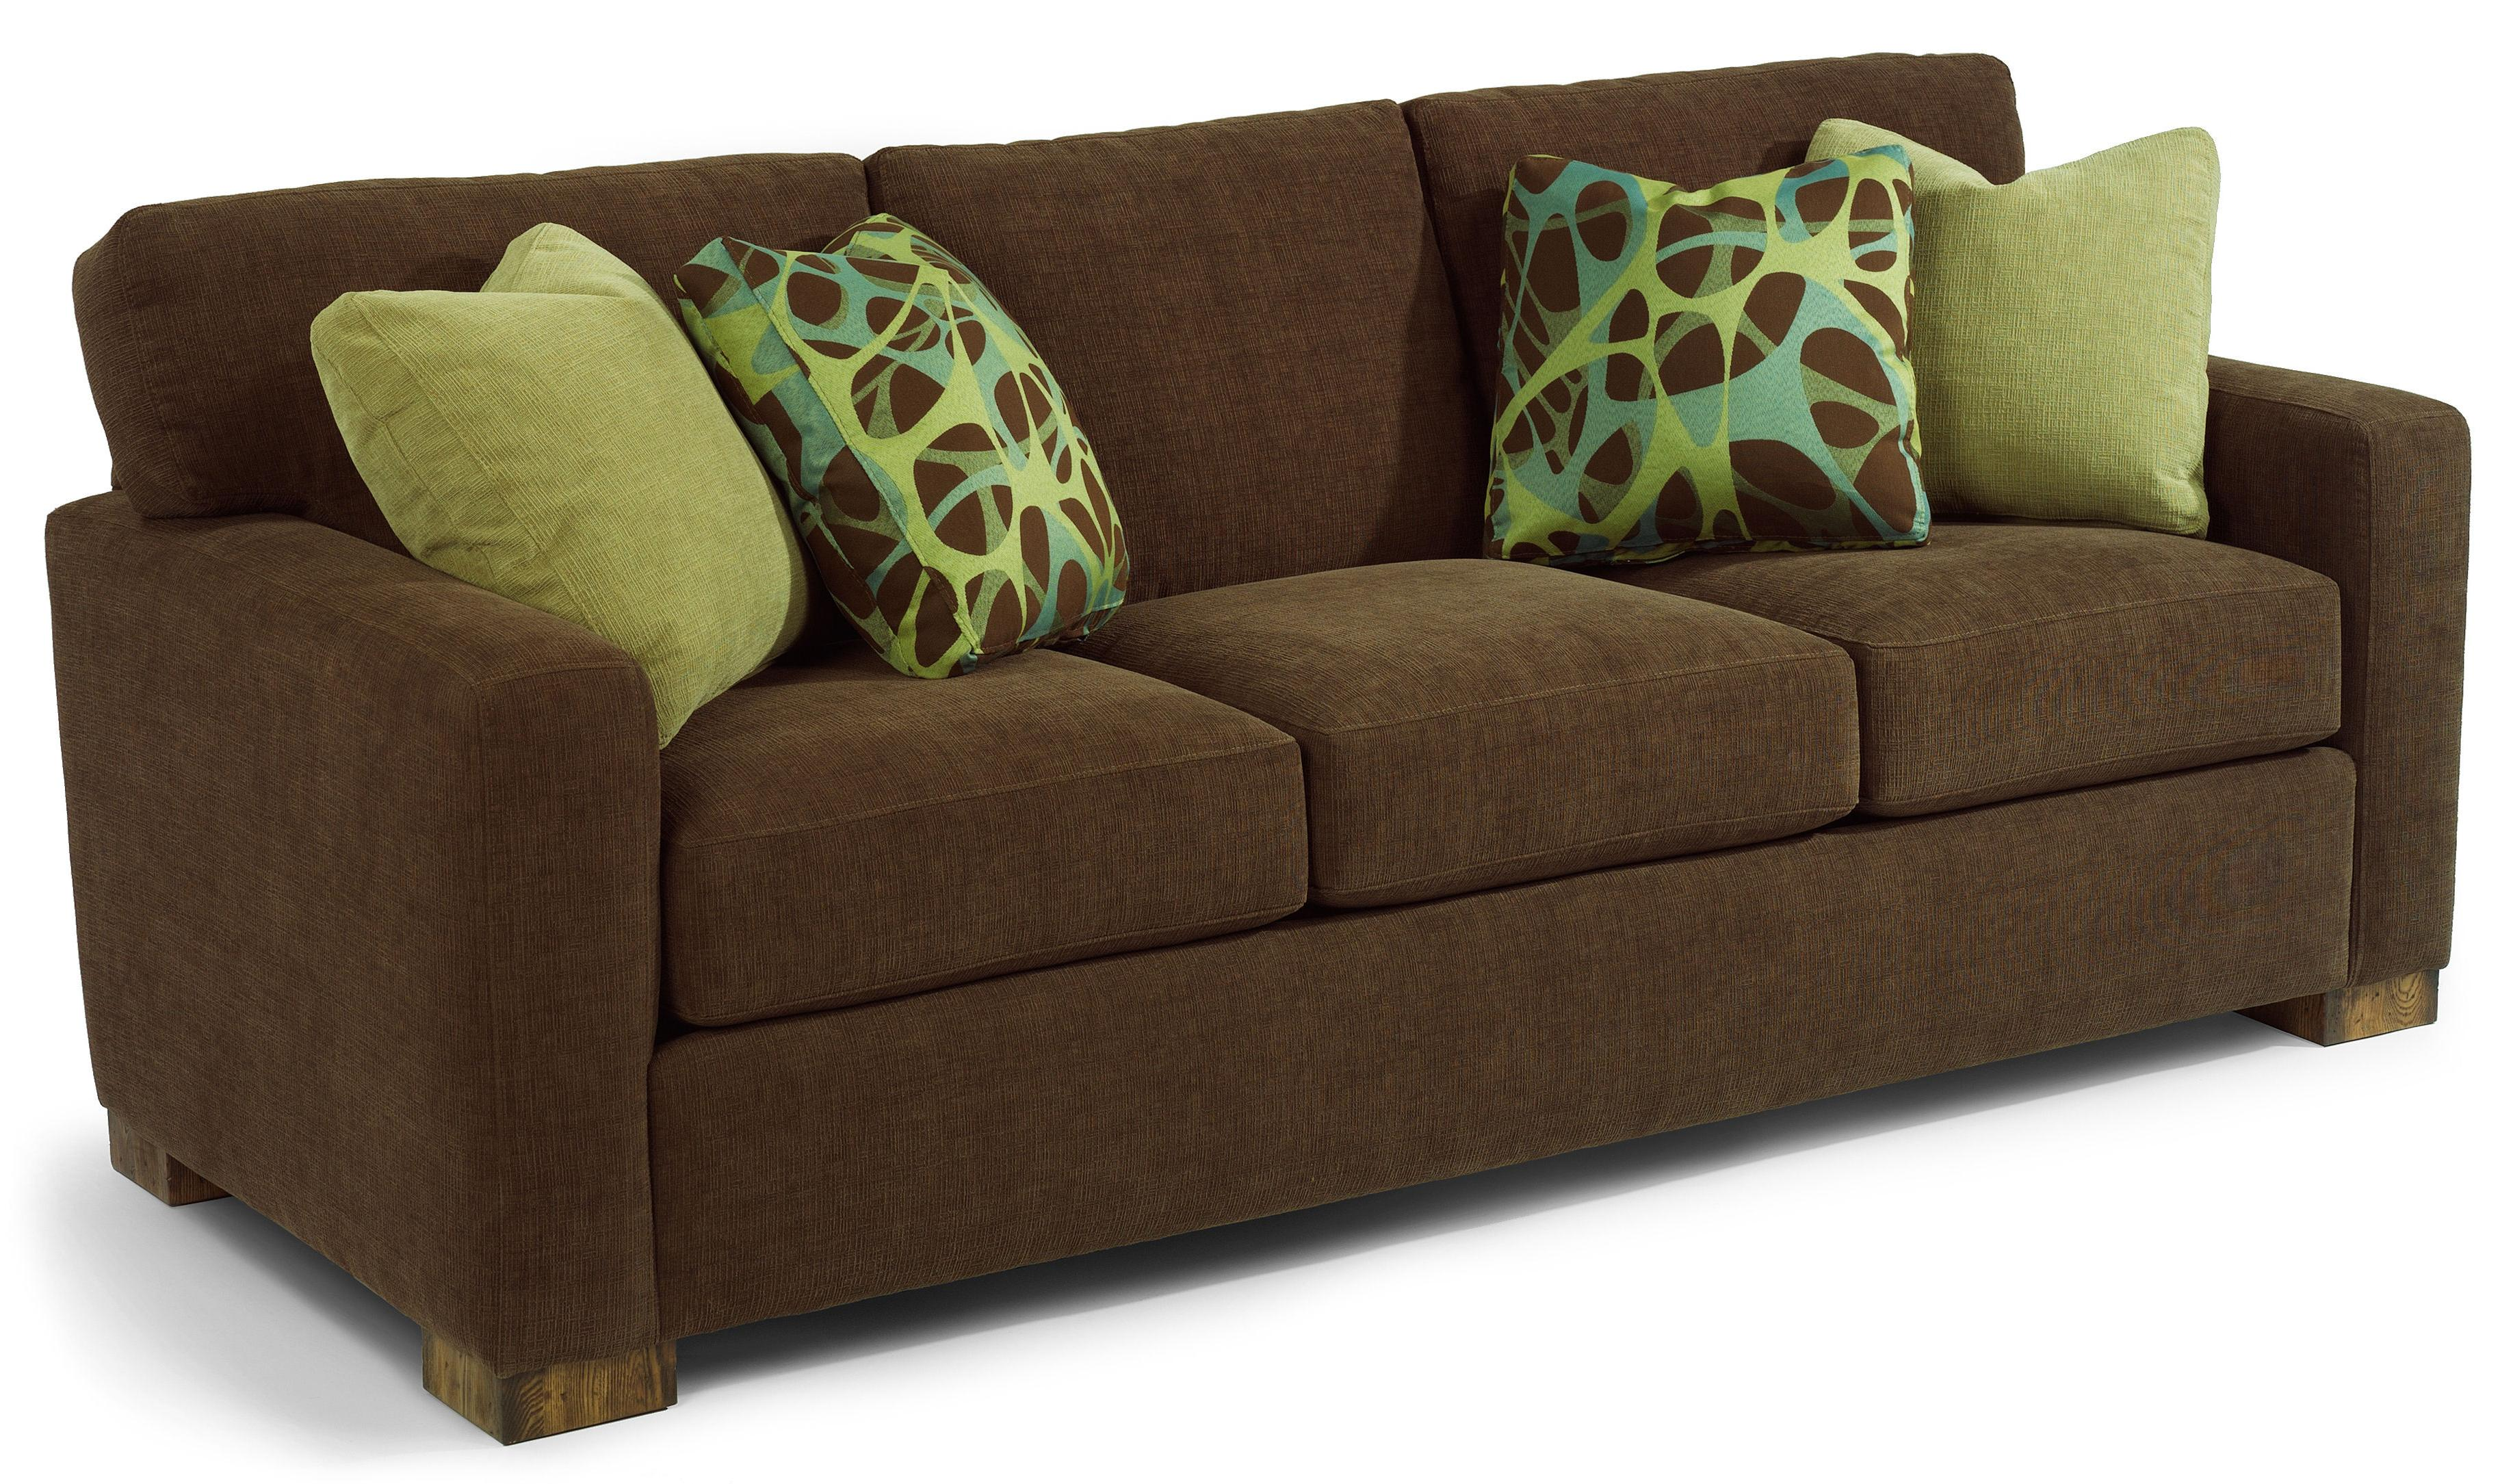 Contemporary Couch Bryant Contemporary Sofa With Track Arms By Flexsteel At Suburban Furniture